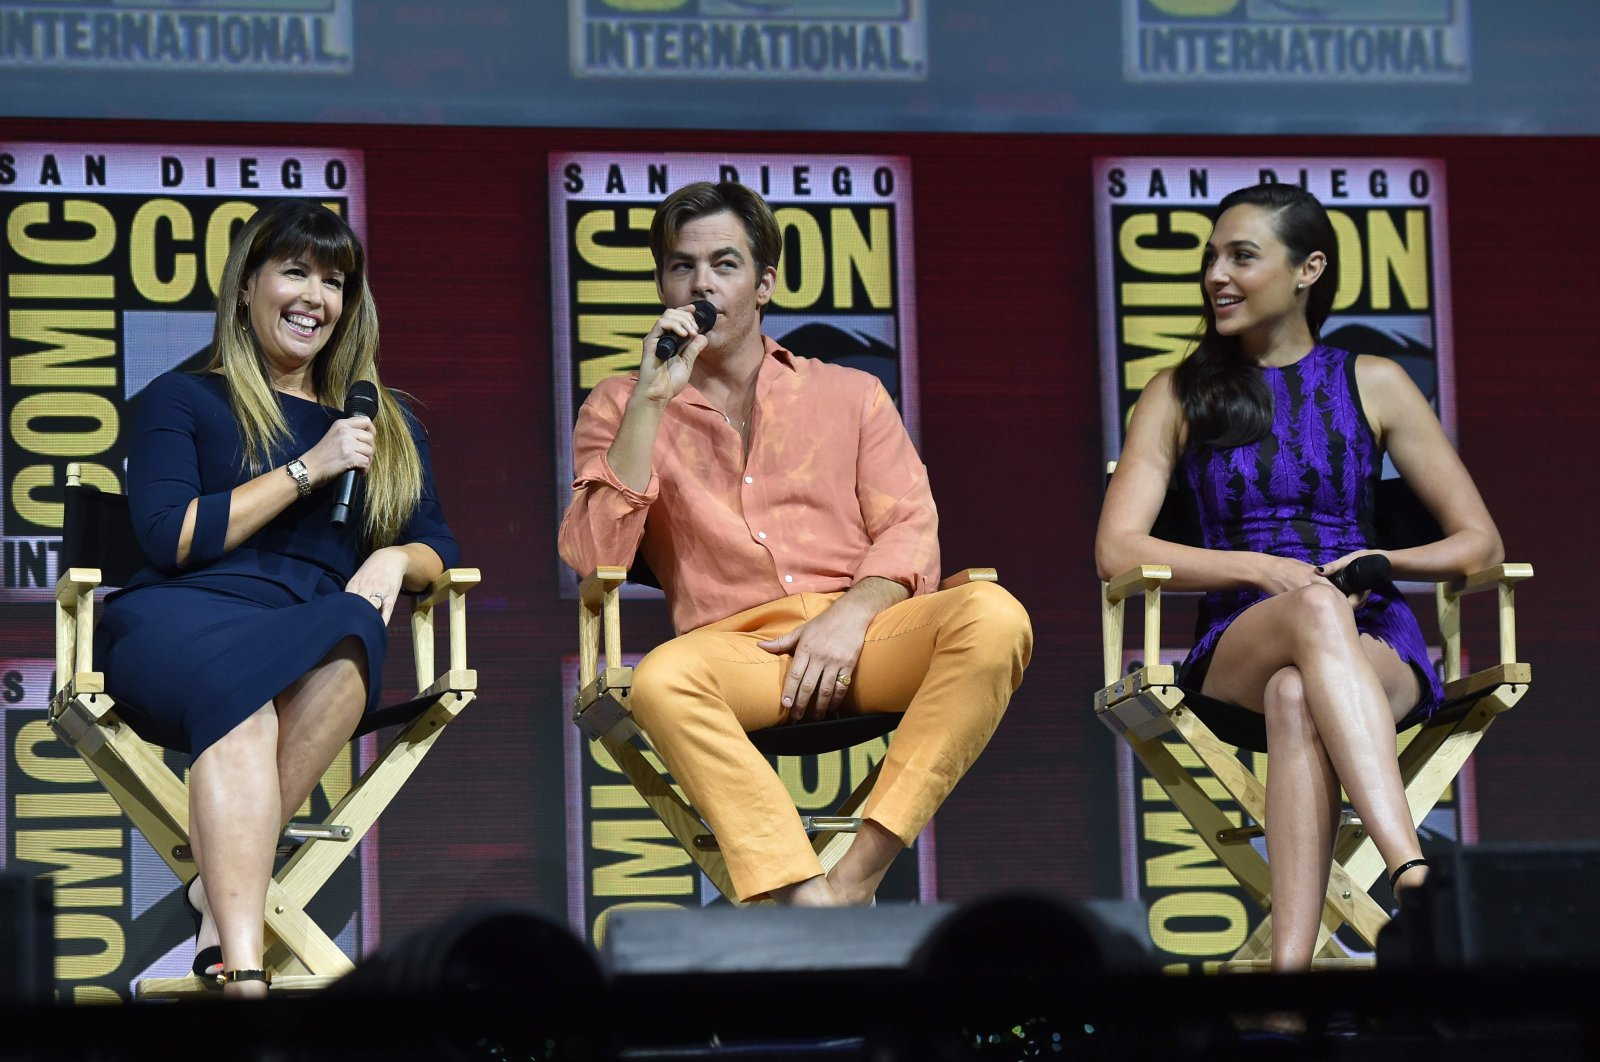 """Director Patty Jenkins, and actors Chris Pine and Gal Gadot (L-R) participate in the Warner Bros. Theatrical Panel for """"Wonder Woman 1984"""" during Comic Con in San Diego, July 21, 2018.  (AFP Photo)"""